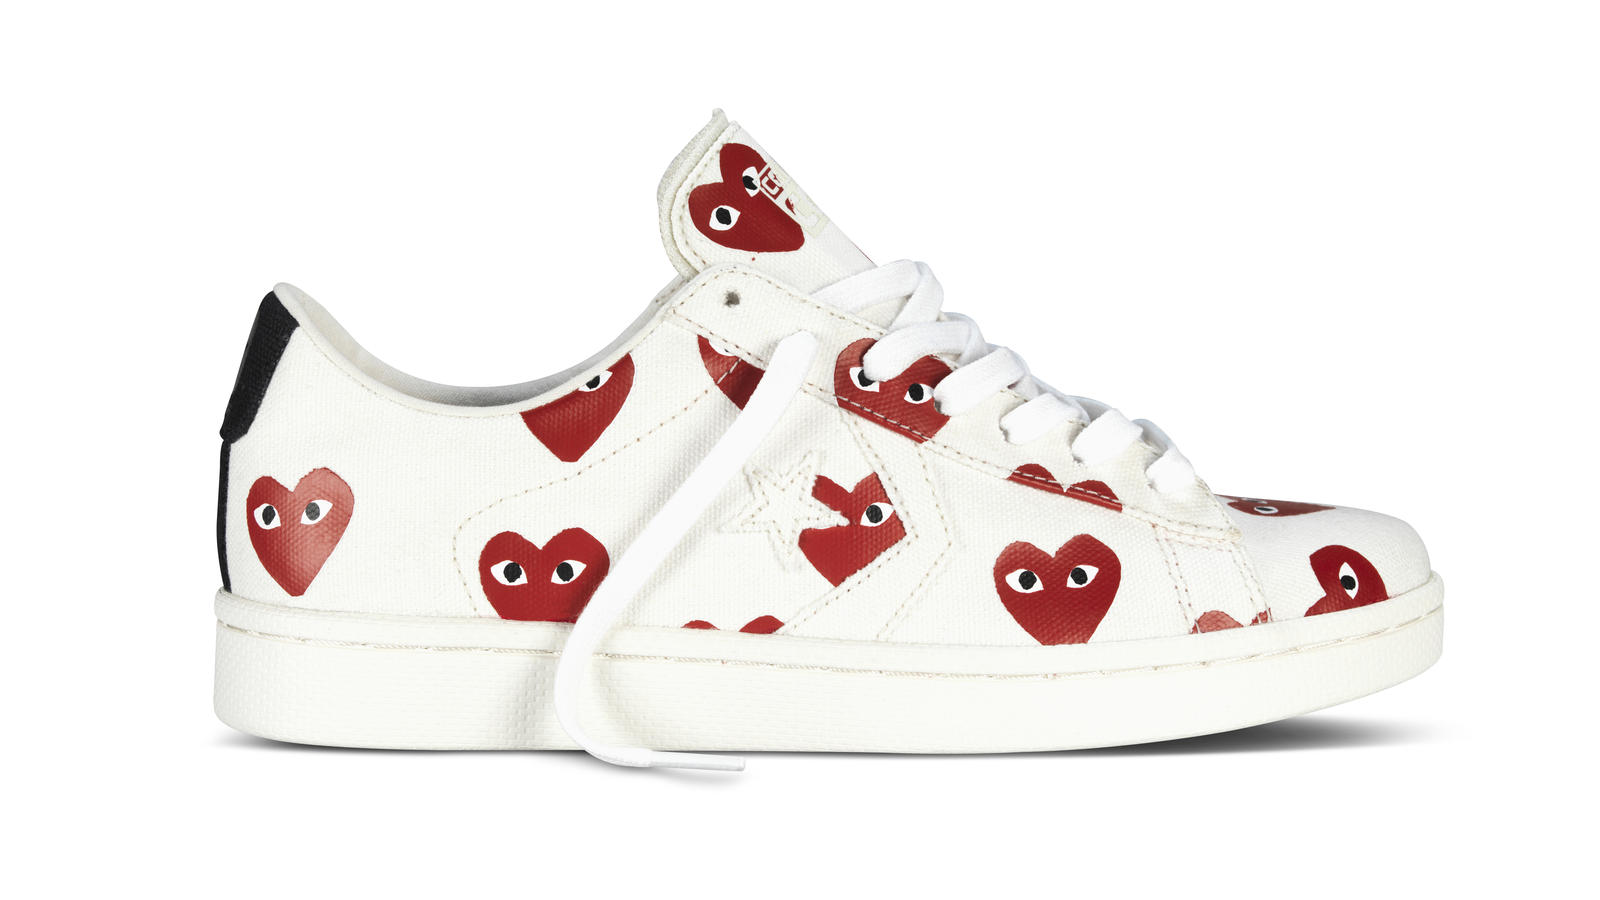 Converse X Cdg White Ox Right Original